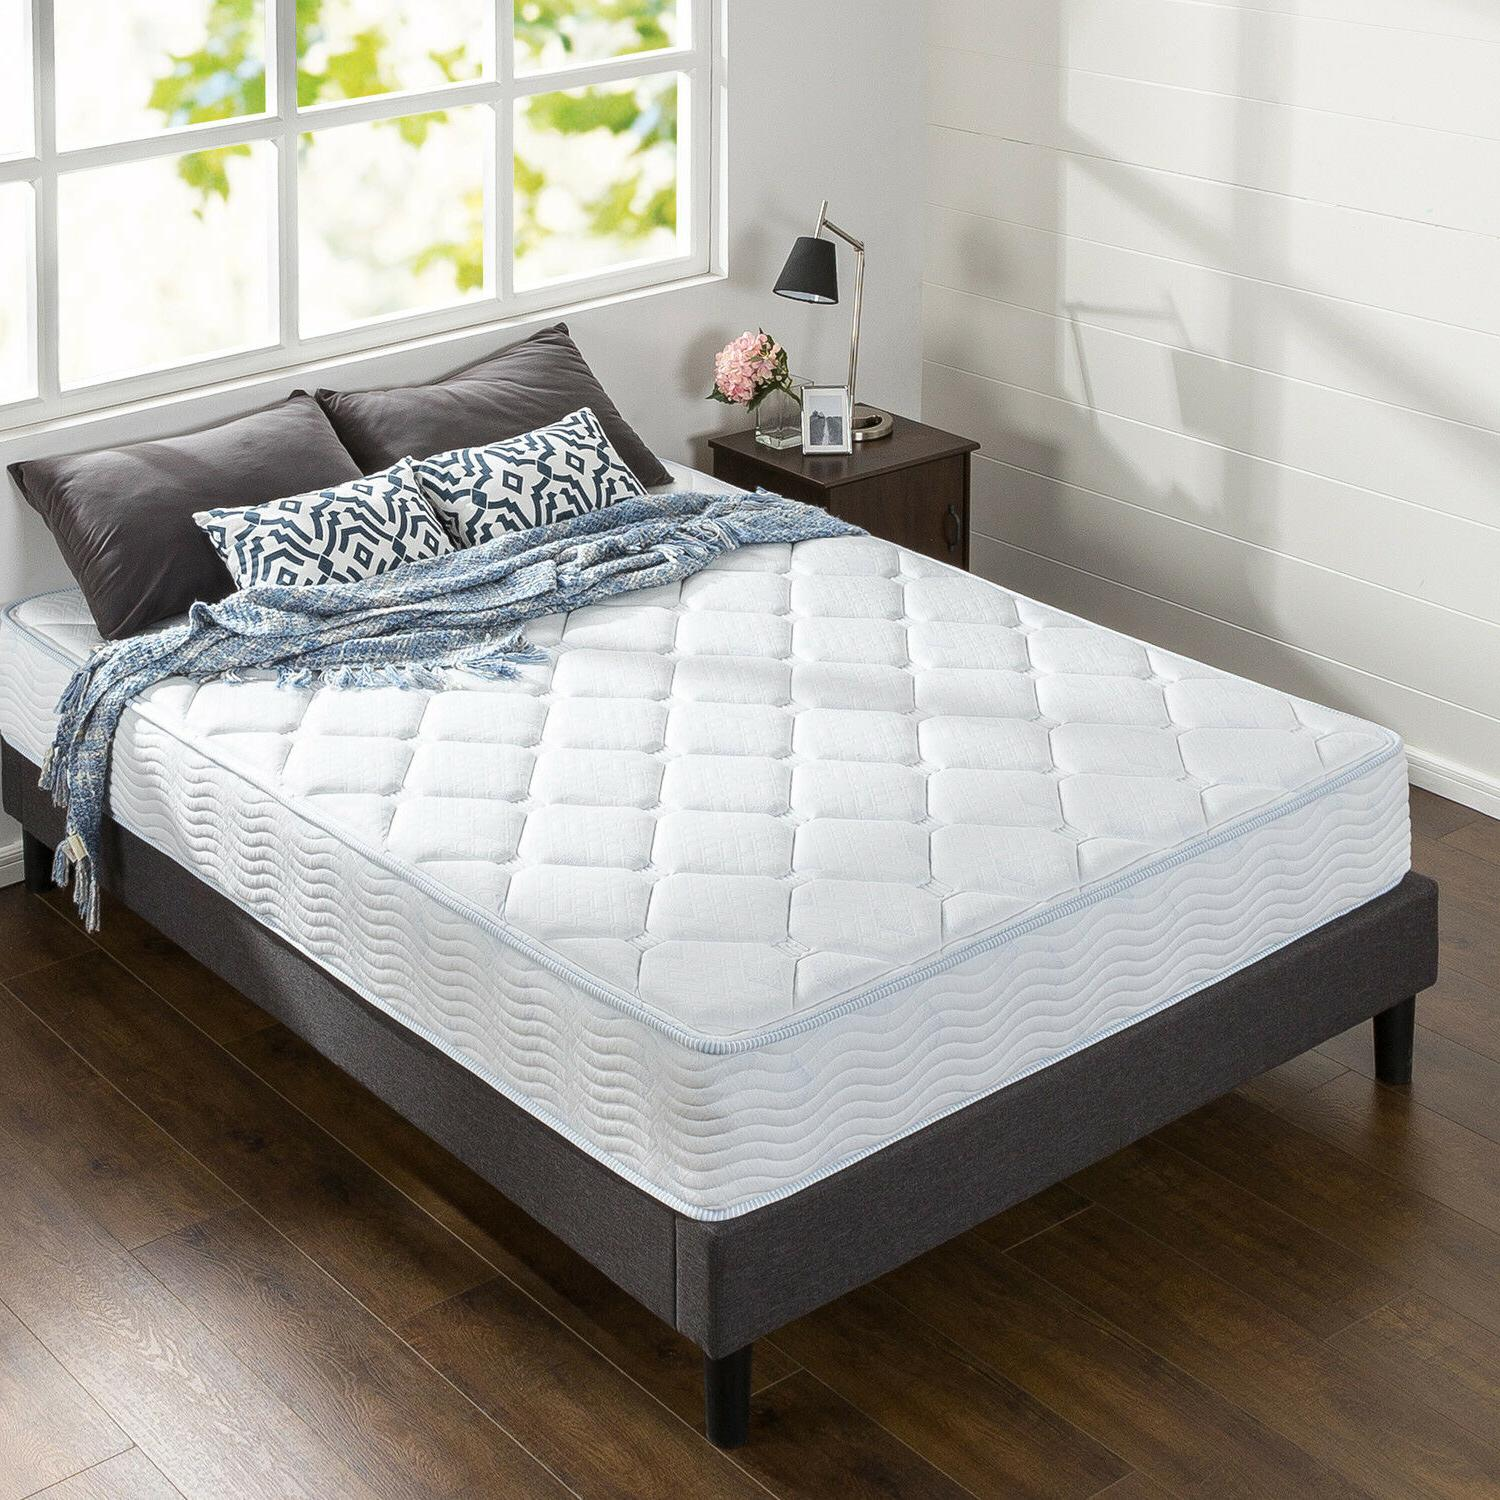 full size bed mattress topper cover spring